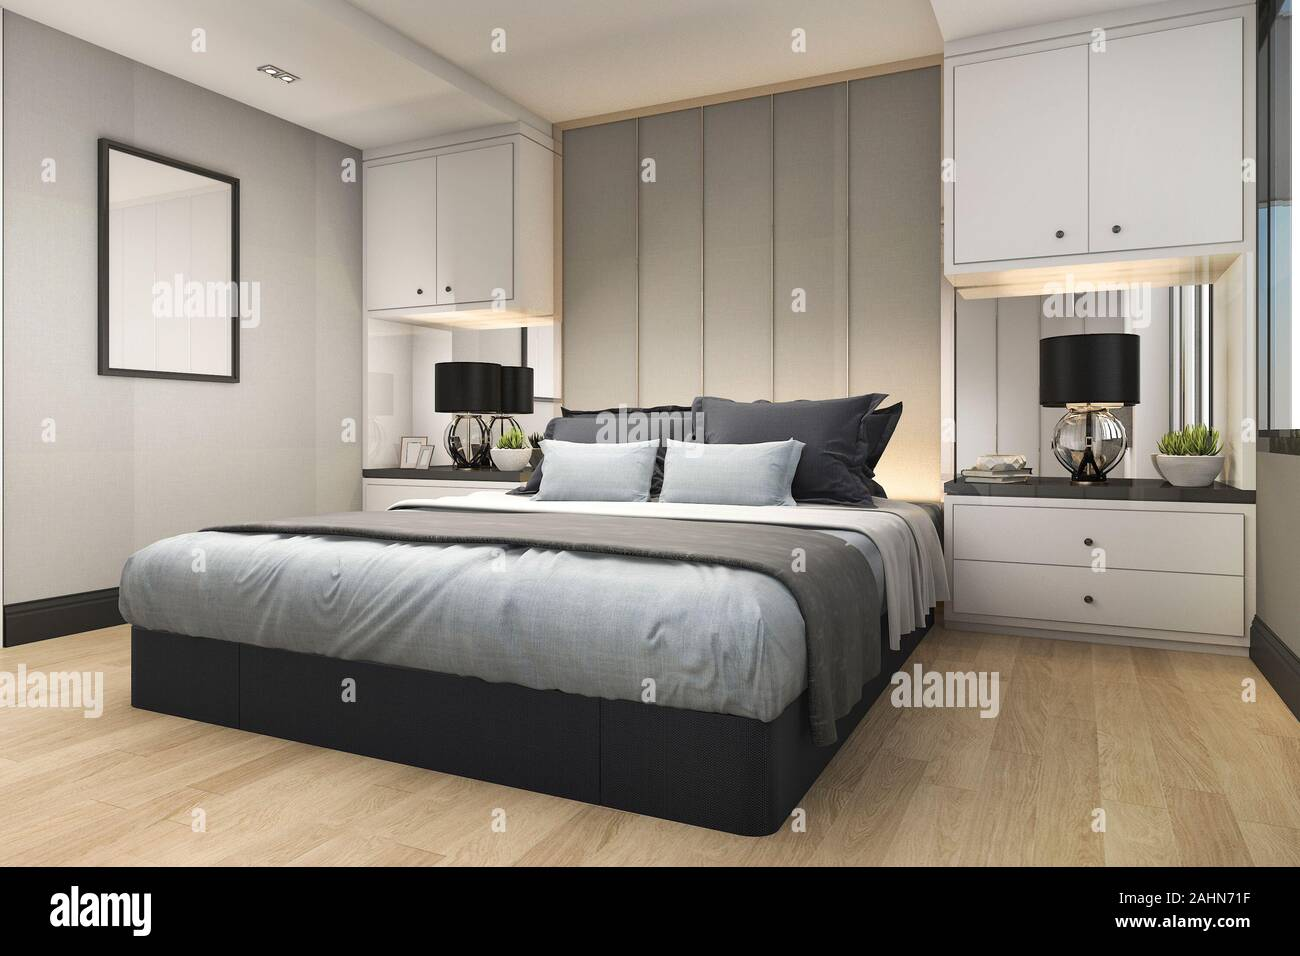 3d Rendering Modern Luxury Blue Bedroom With Marble Decor Stock Photo Alamy